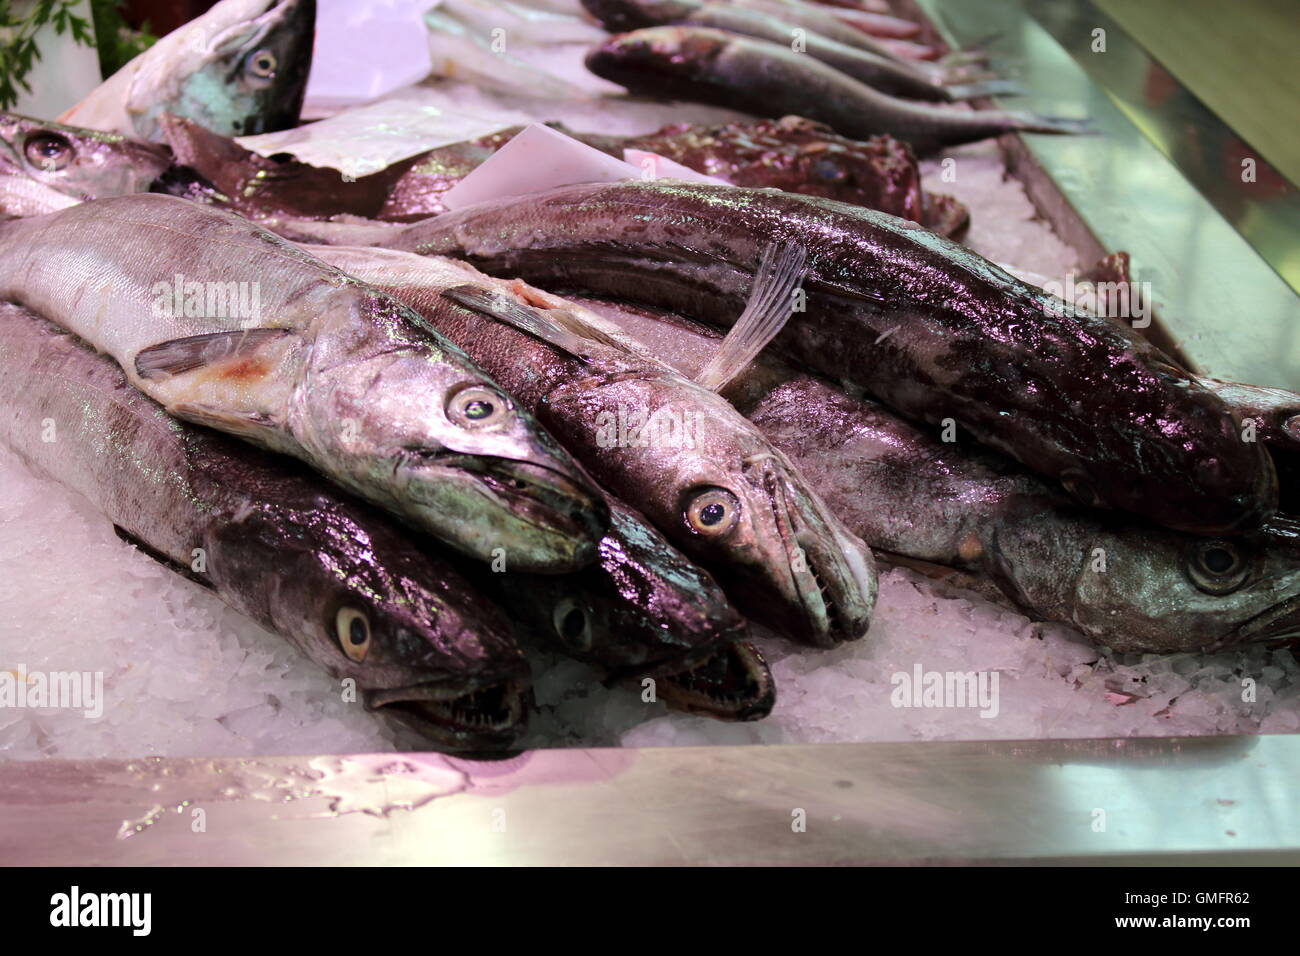 fish market in a southern europe cities - Stock Image